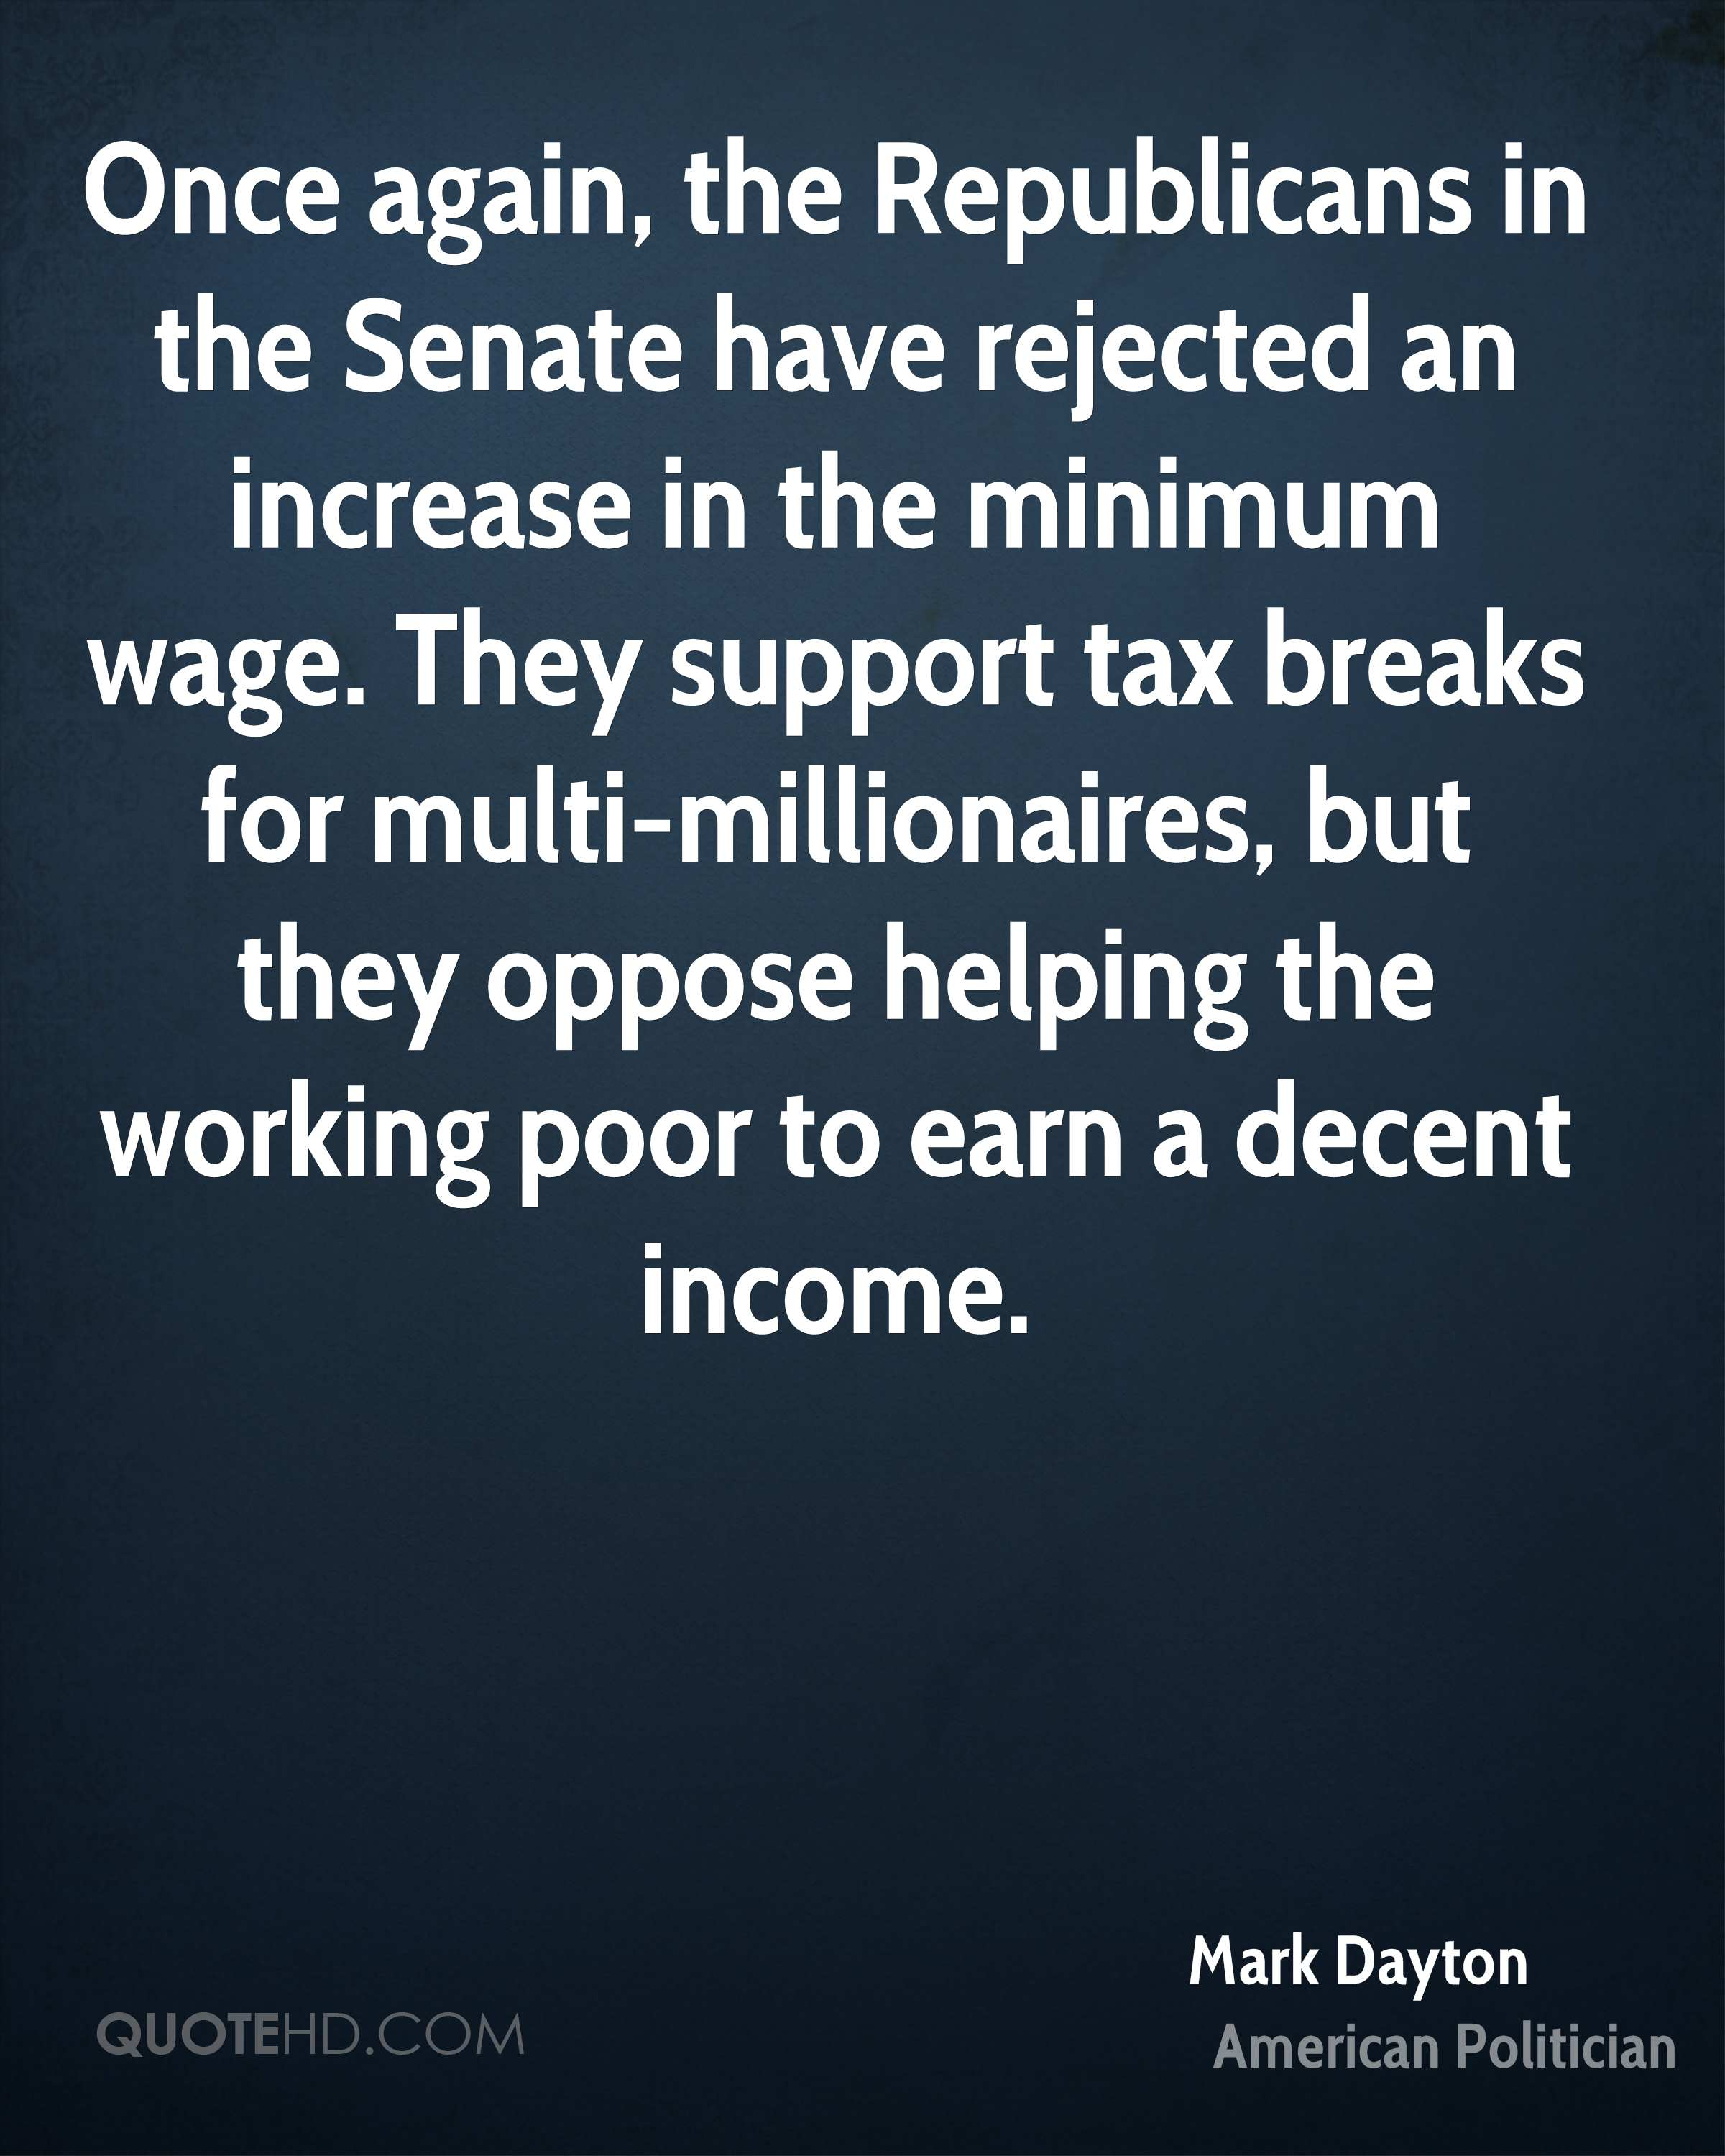 Once again, the Republicans in the Senate have rejected an increase in the minimum wage. They support tax breaks for multi-millionaires, but they oppose helping the working poor to earn a decent income.